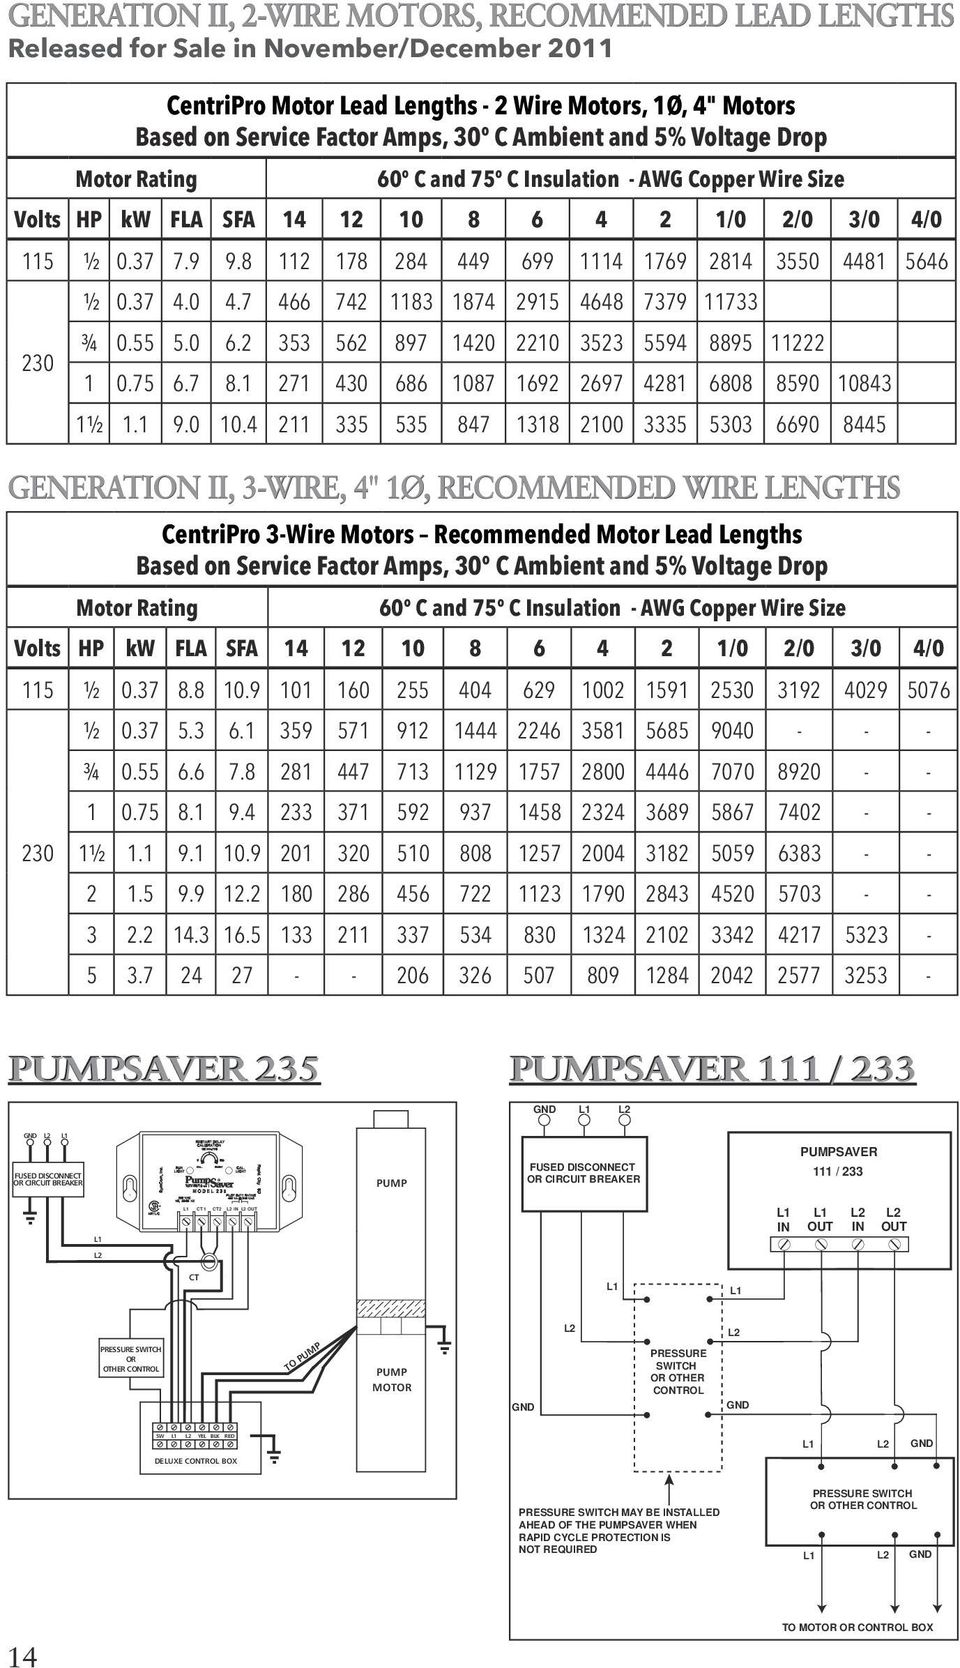 siga cr wiring diagram Download-Siga Ct1 Wiring Diagram New Siga Ct1 Wiring Diagram Siga Io 4-t